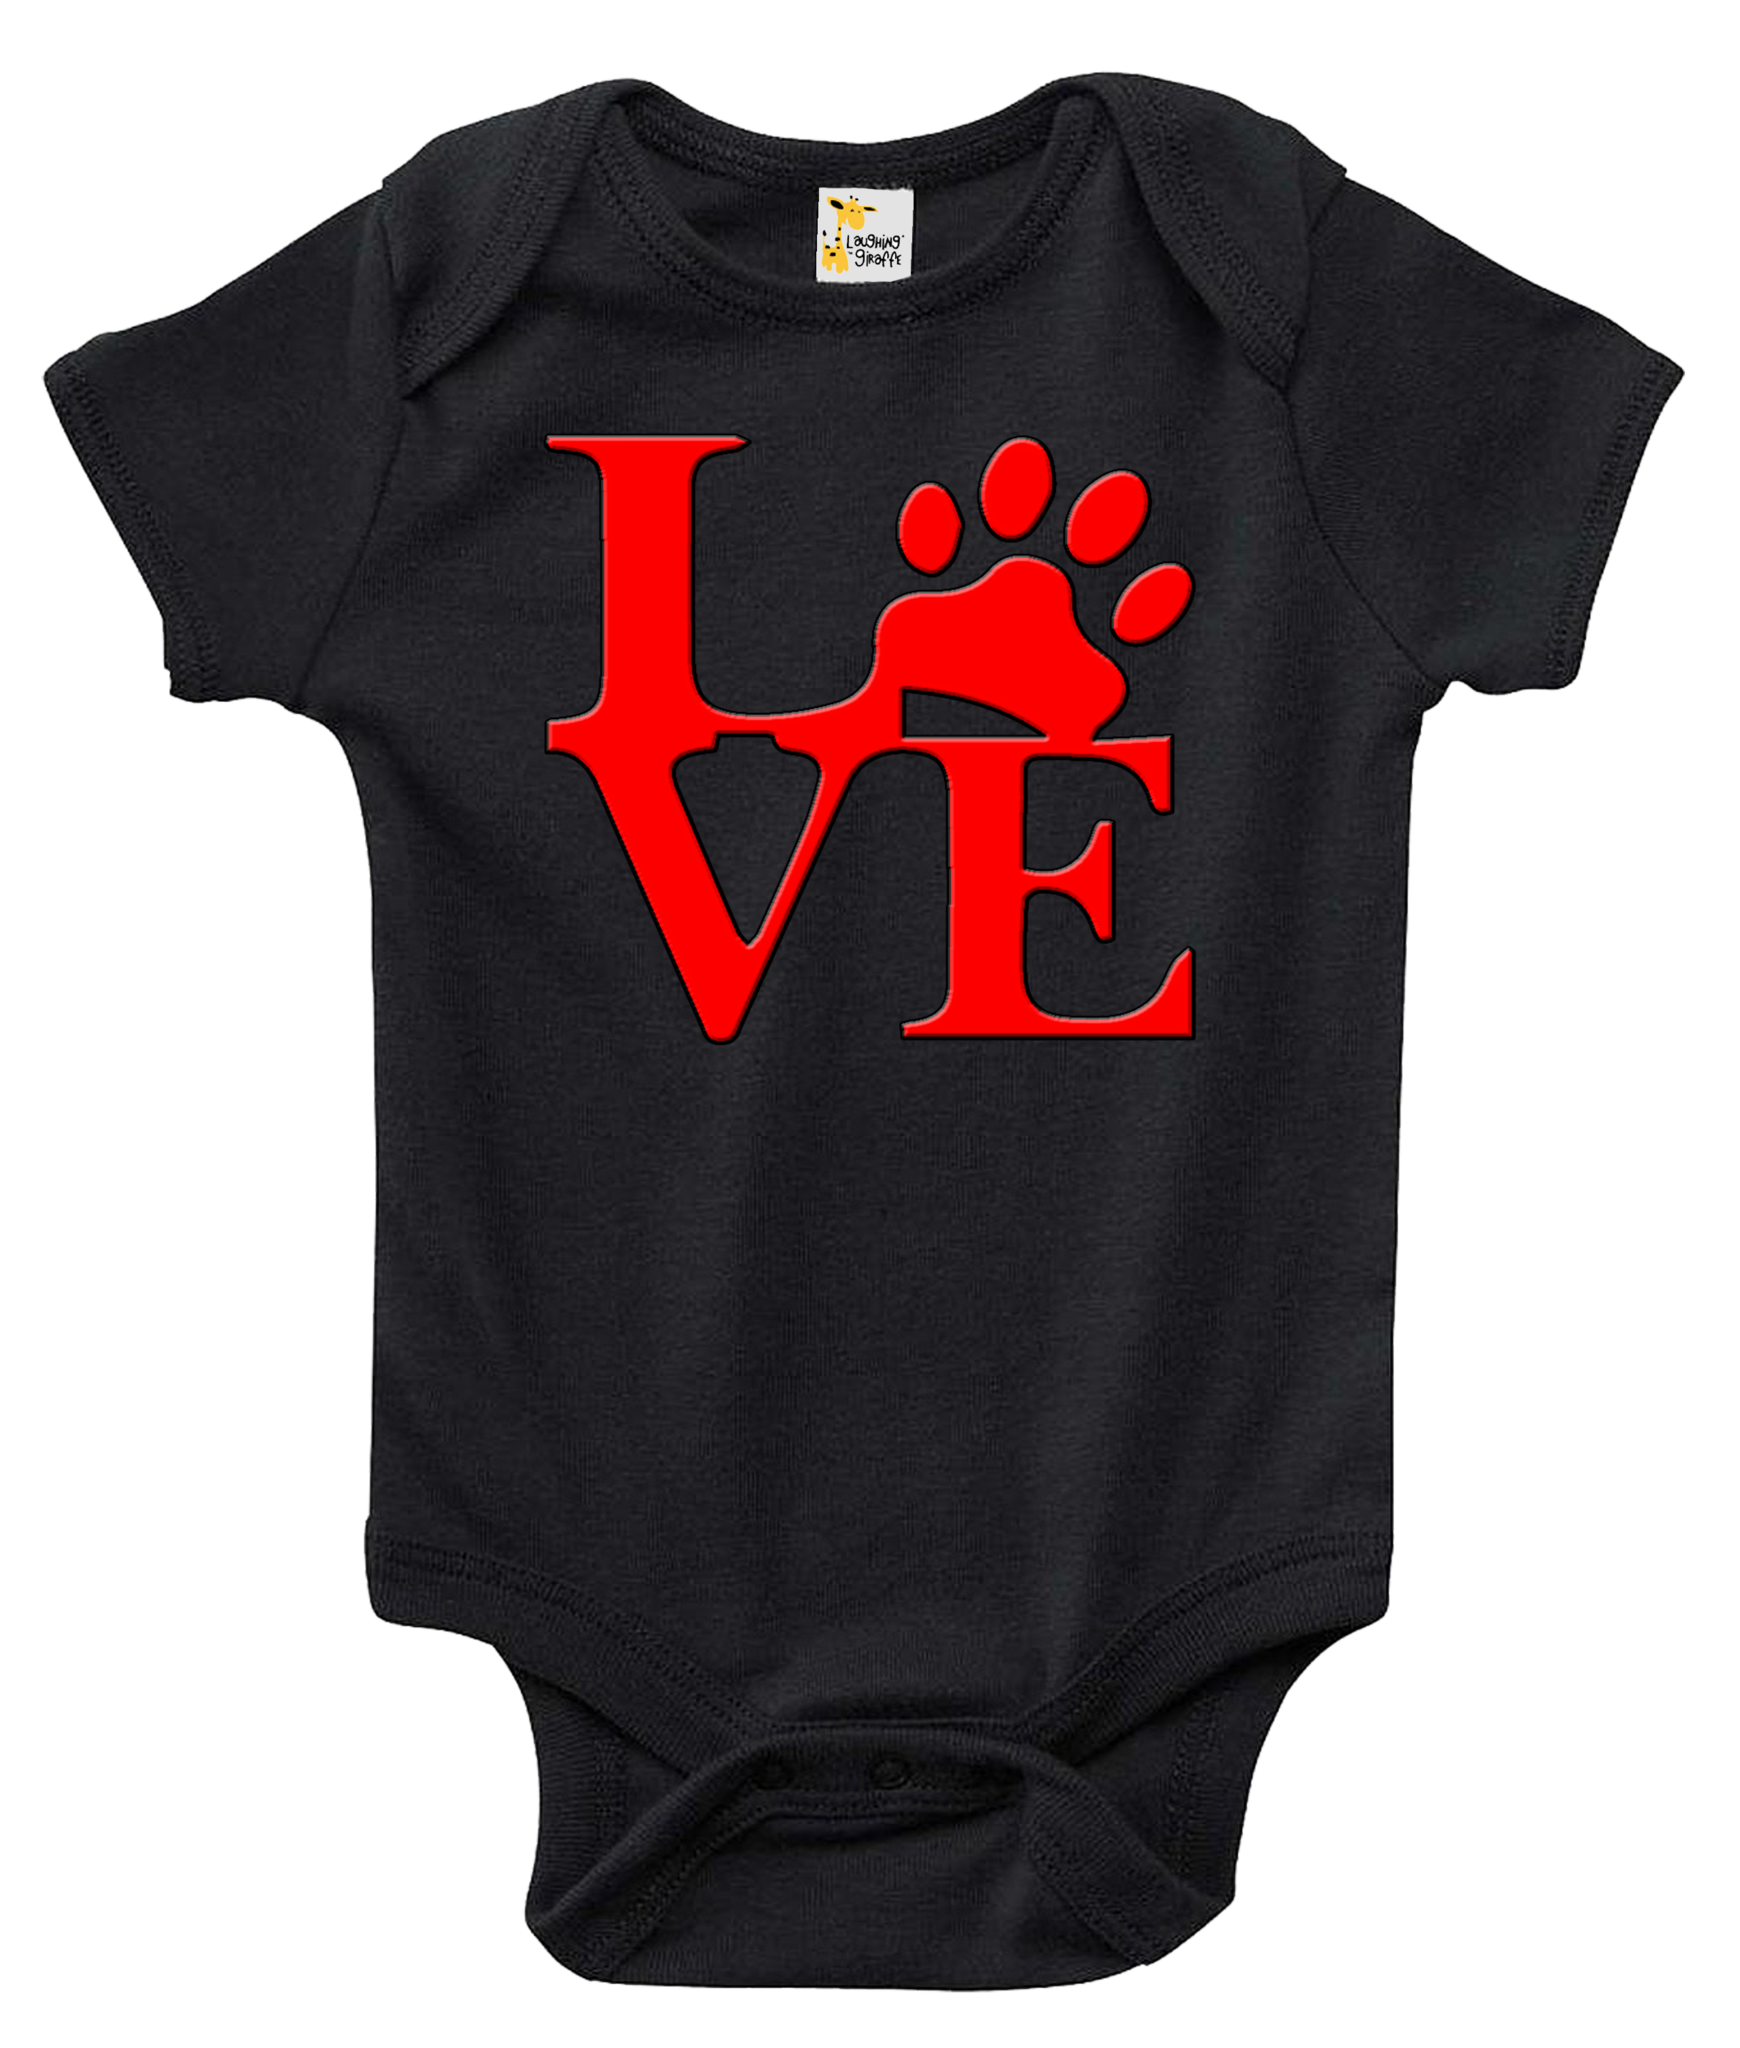 Baby Bodysuit Love For Animals Cool Baby Clothes Cute